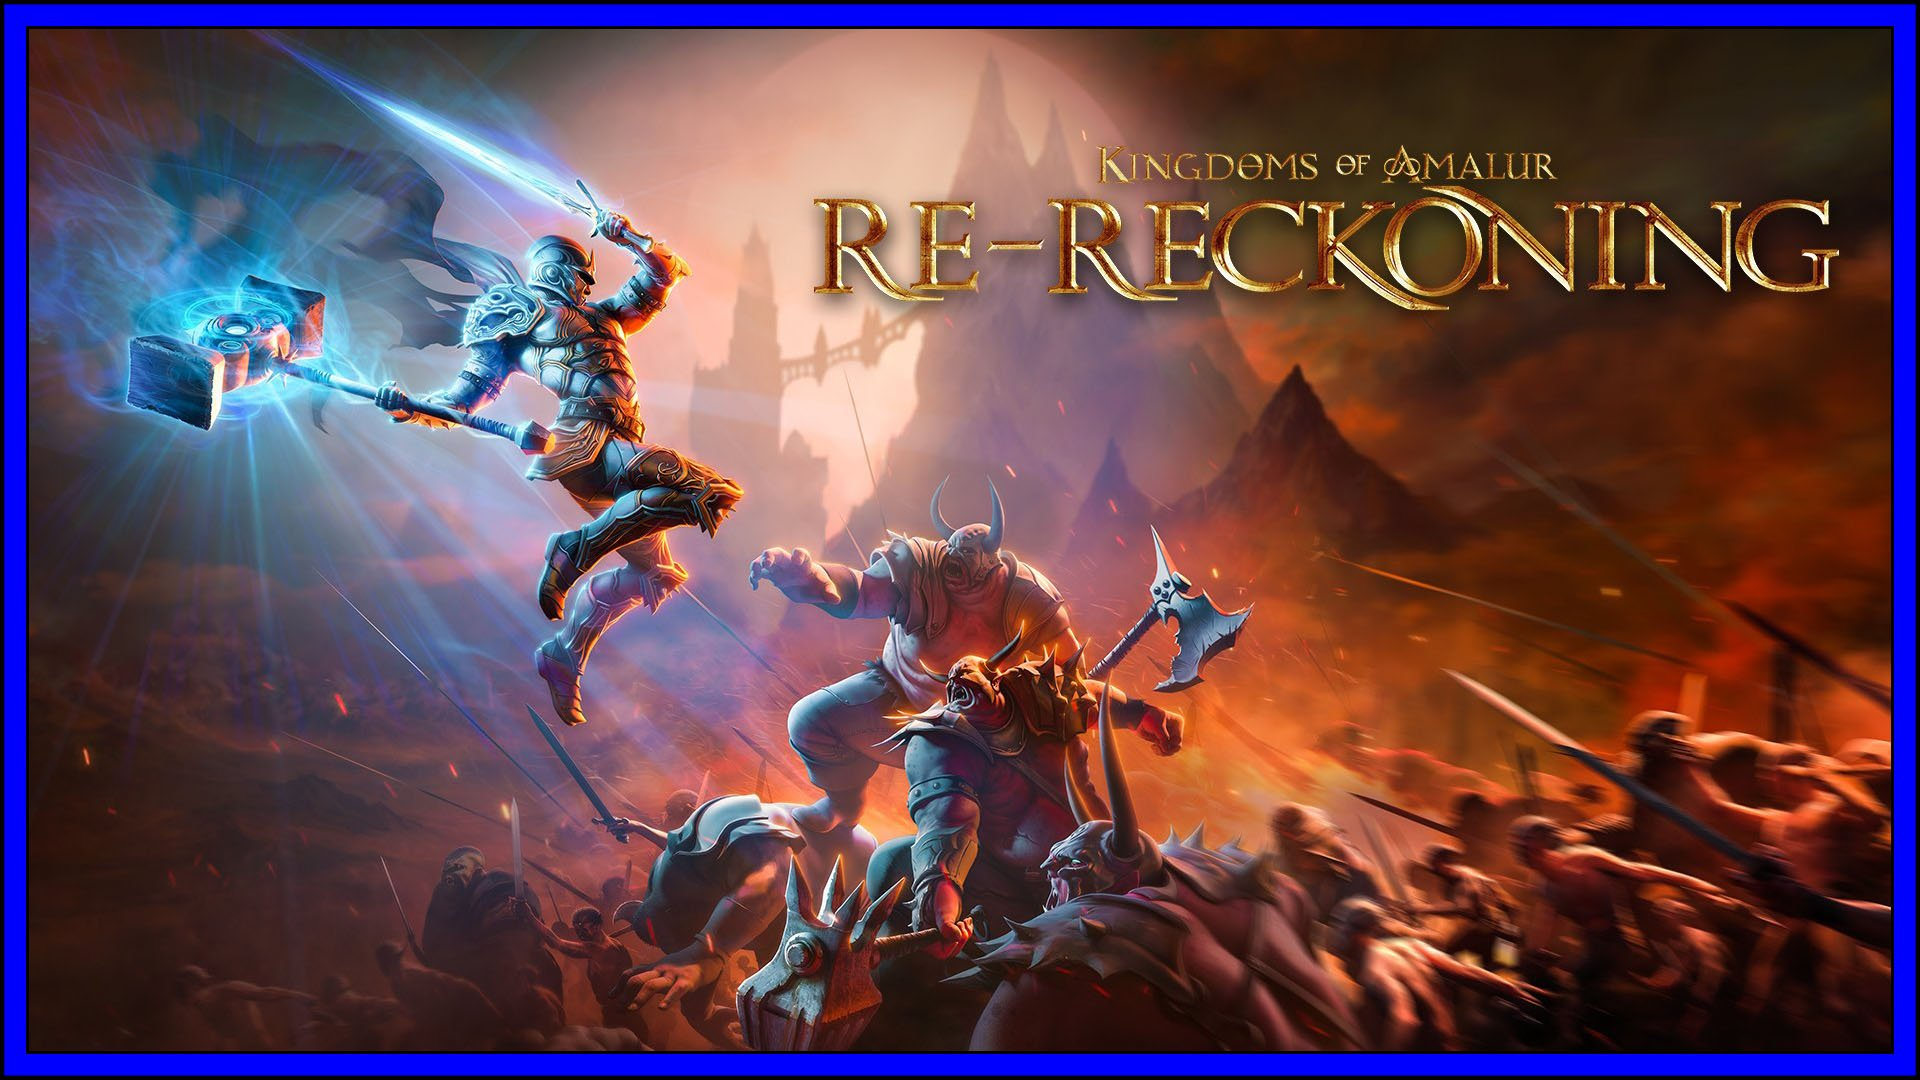 Kingdoms of Amalur: Re-Reckoning (PS4) Review